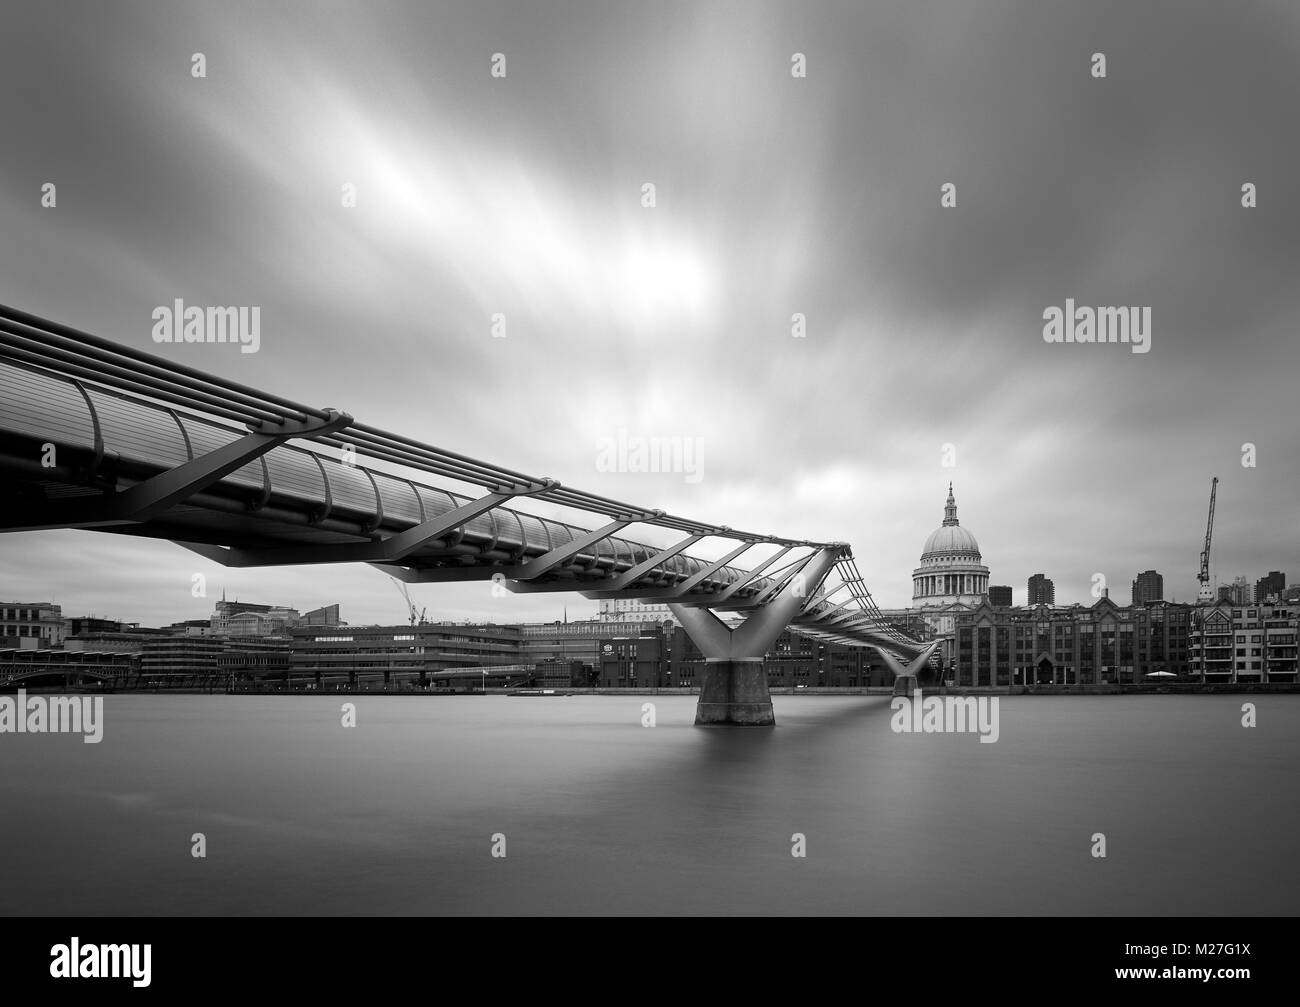 The Millennium Footbridge and St Paul's Cathedral - Stock Image